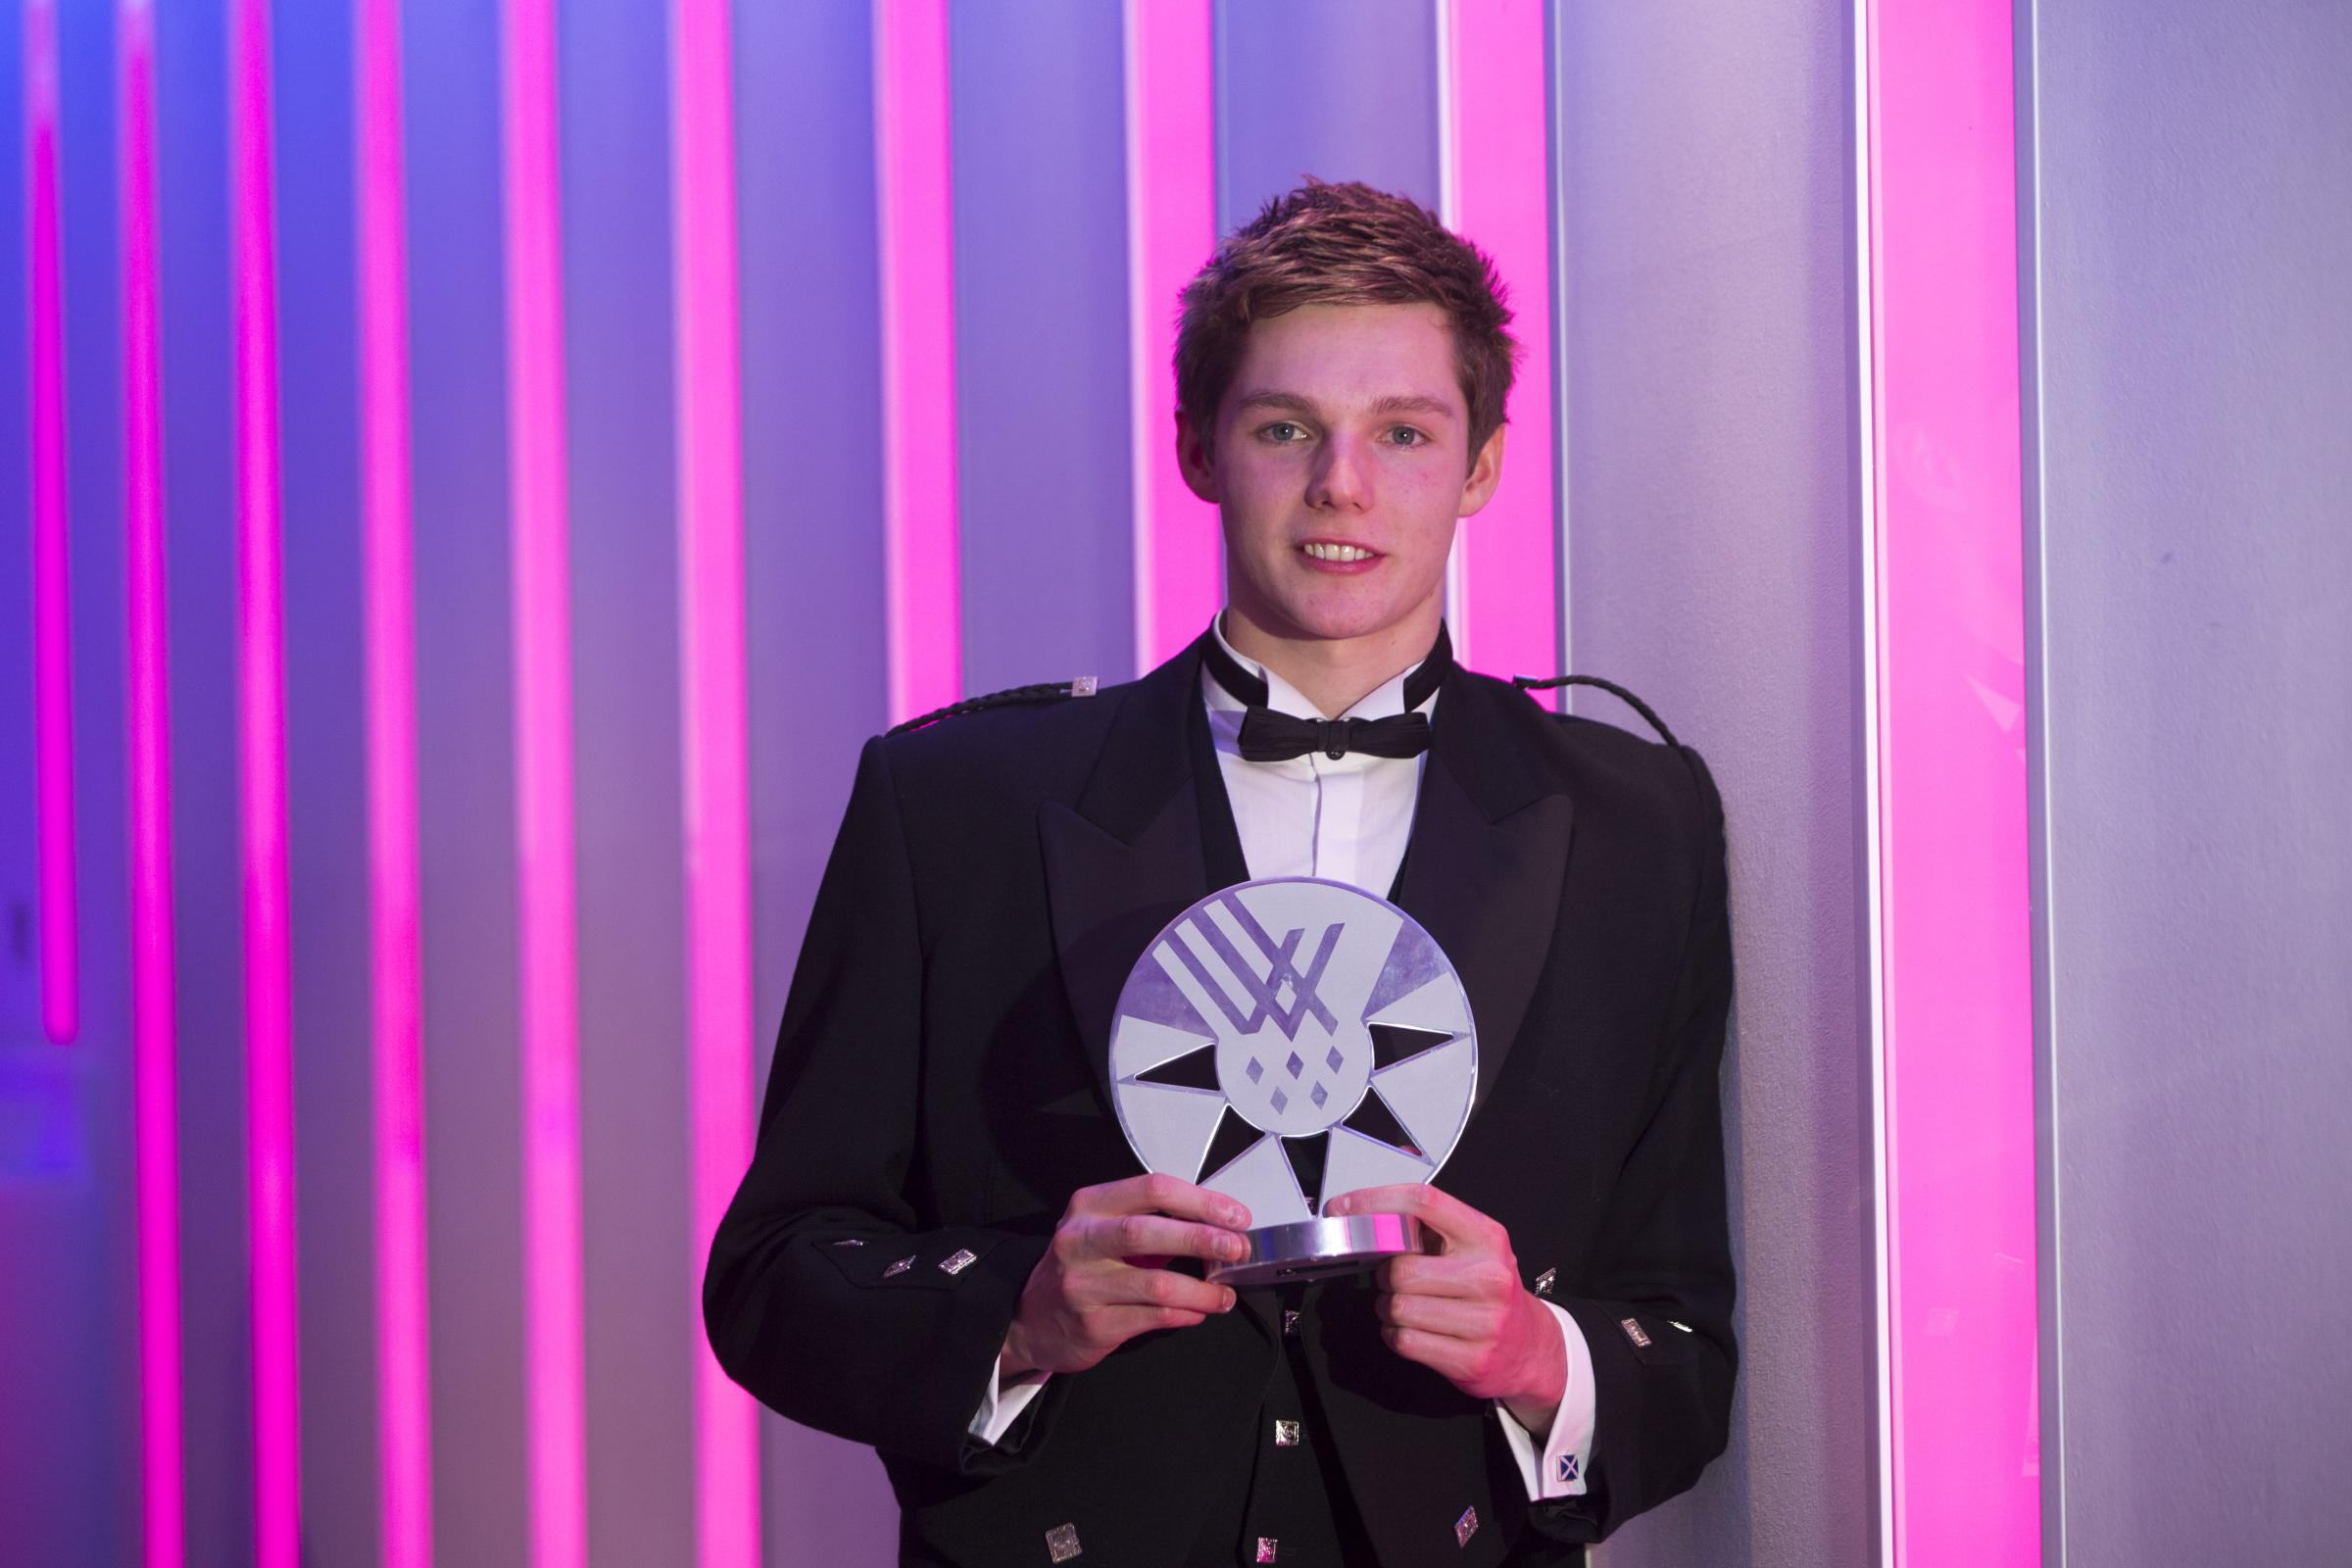 Duncan Scott wins athlete of the year, with Steven Tigg named coach of the year